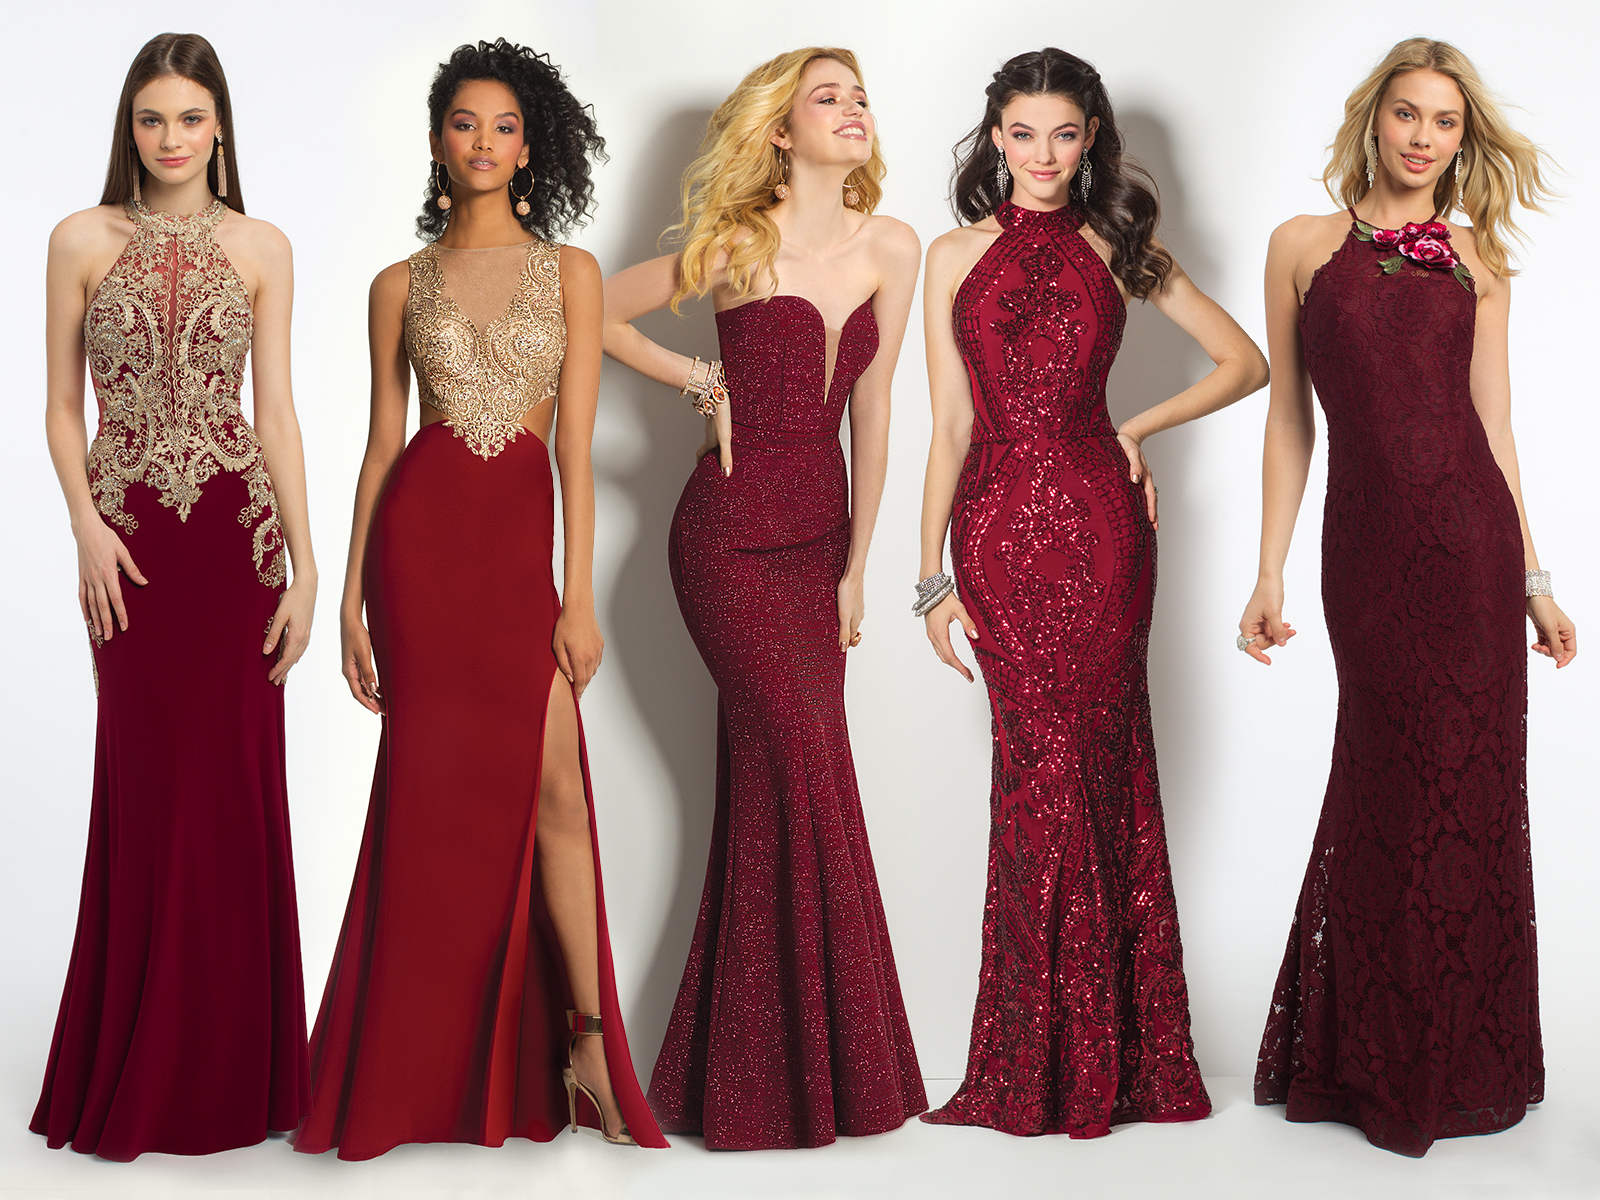 Red Prom Dresses Inspired By V-Day